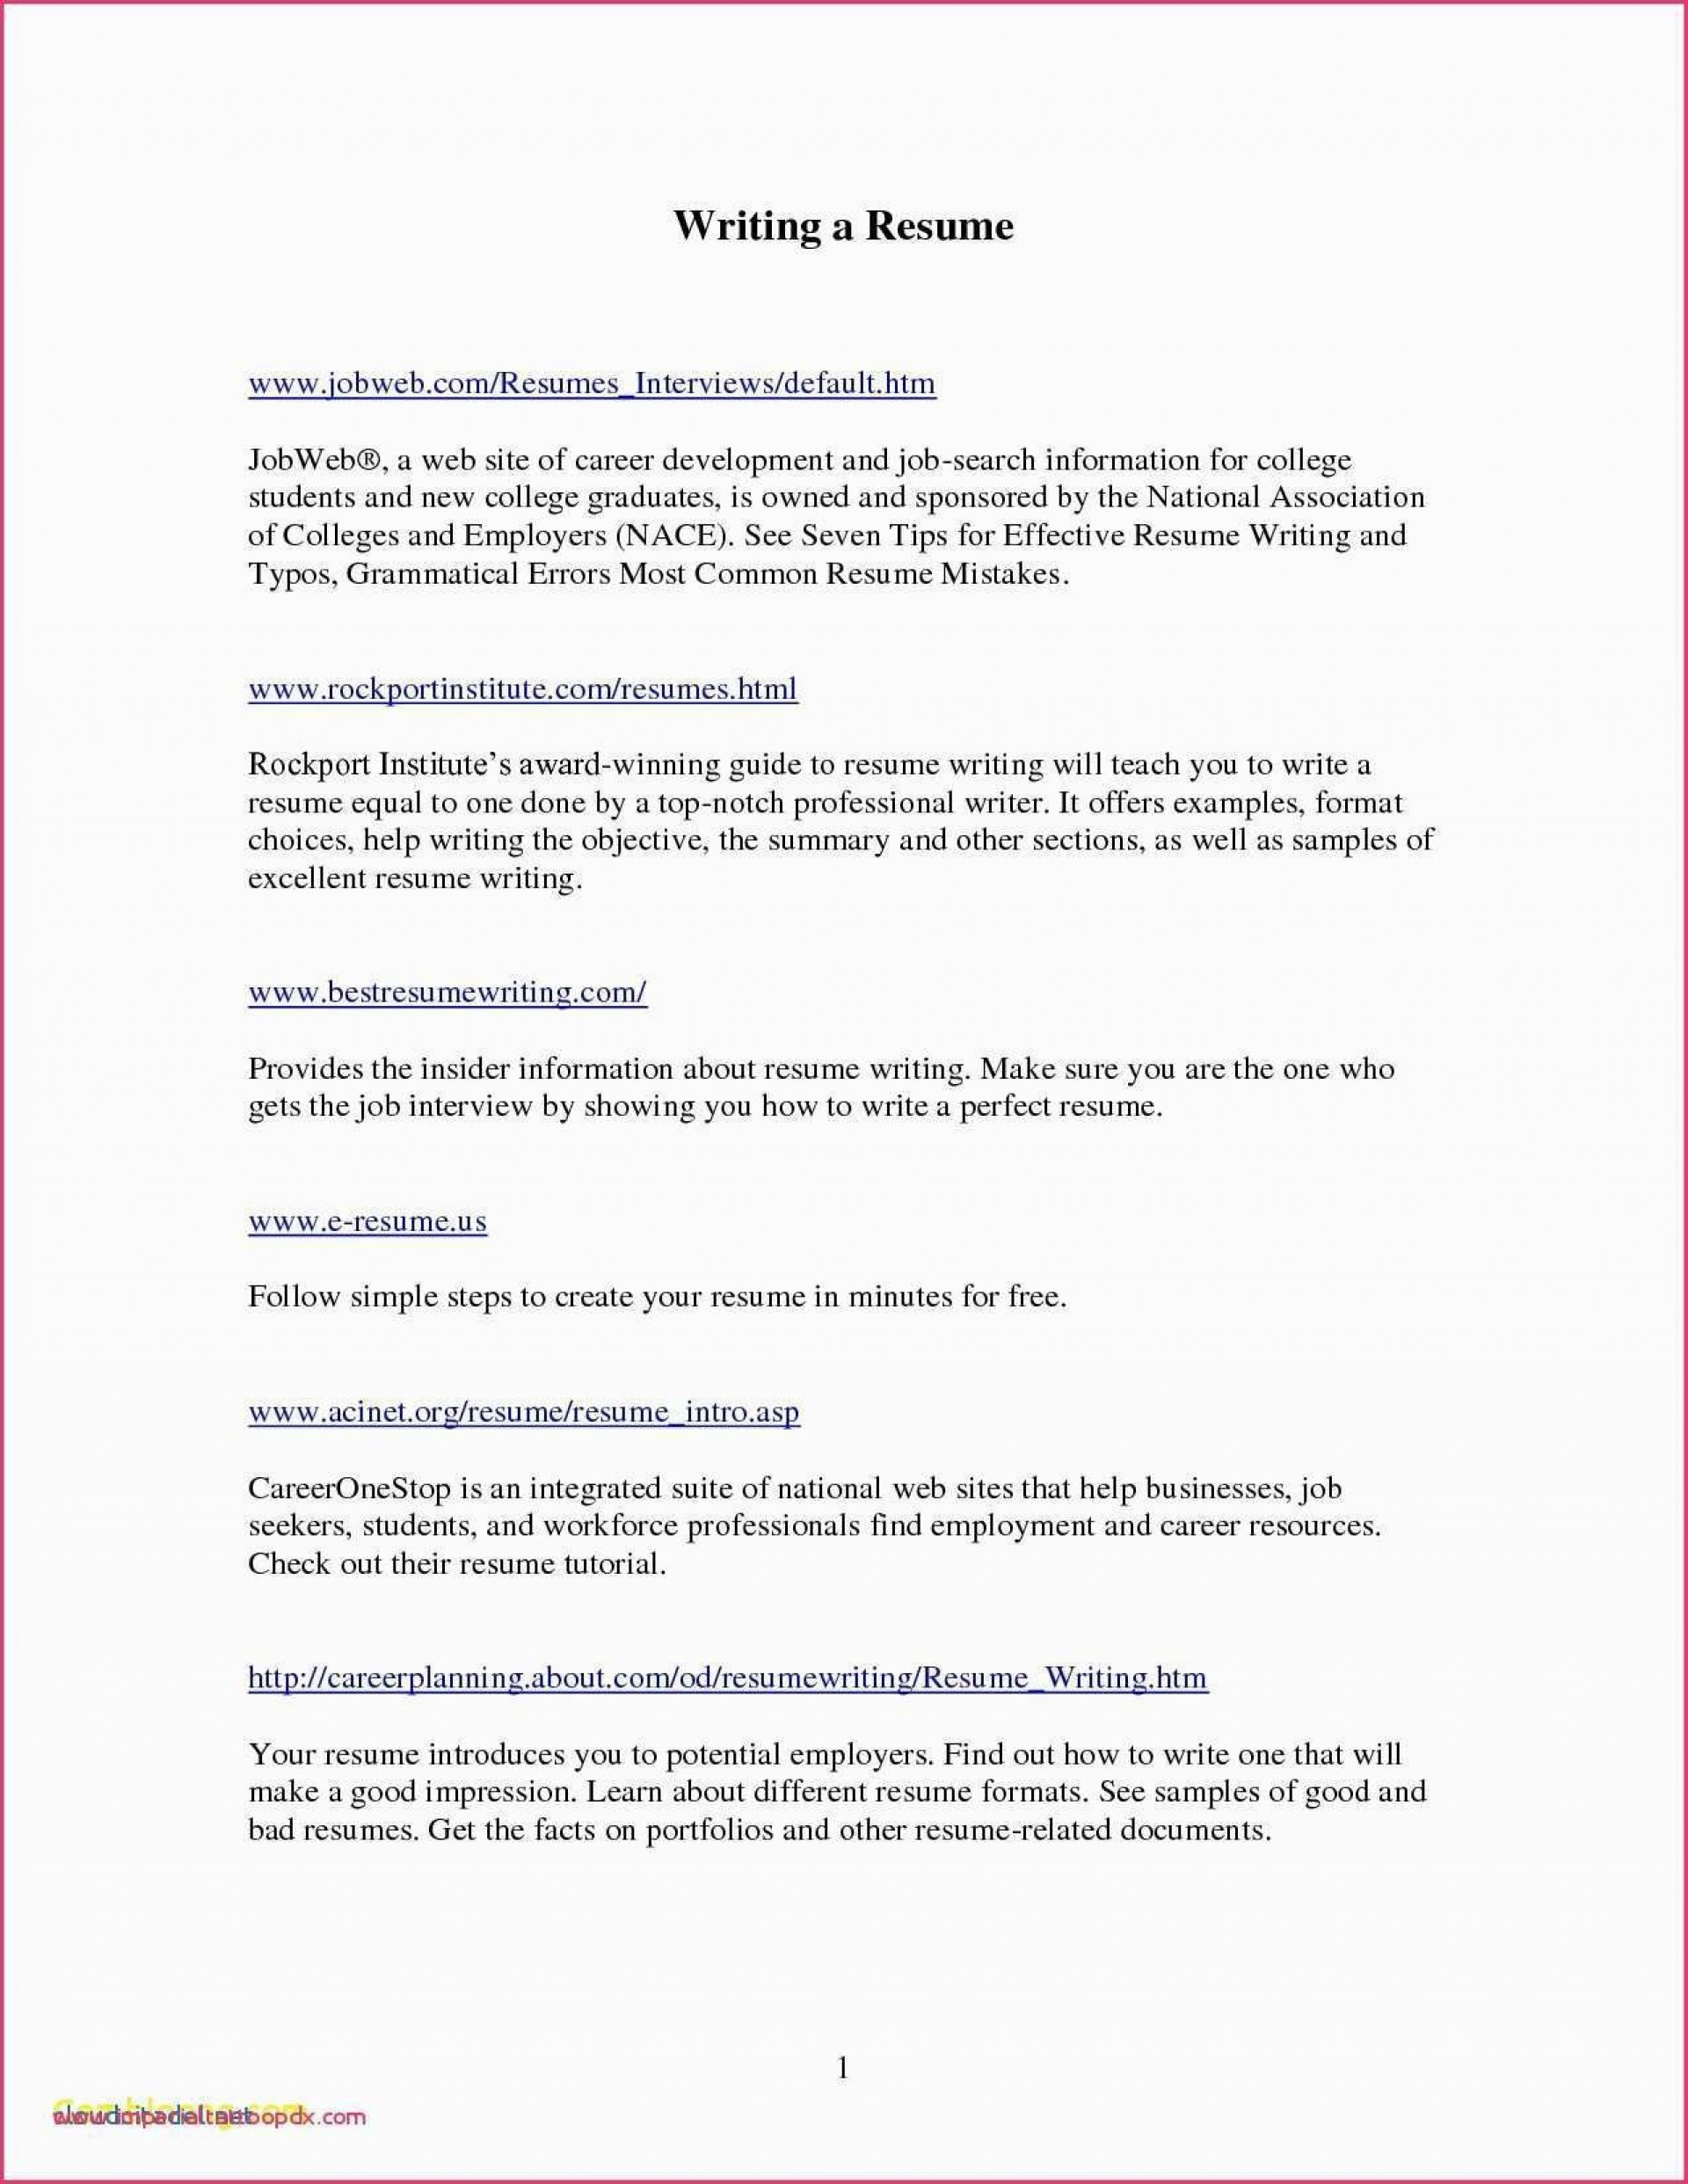 024 Mla Format Research Paper Outline Template Apa